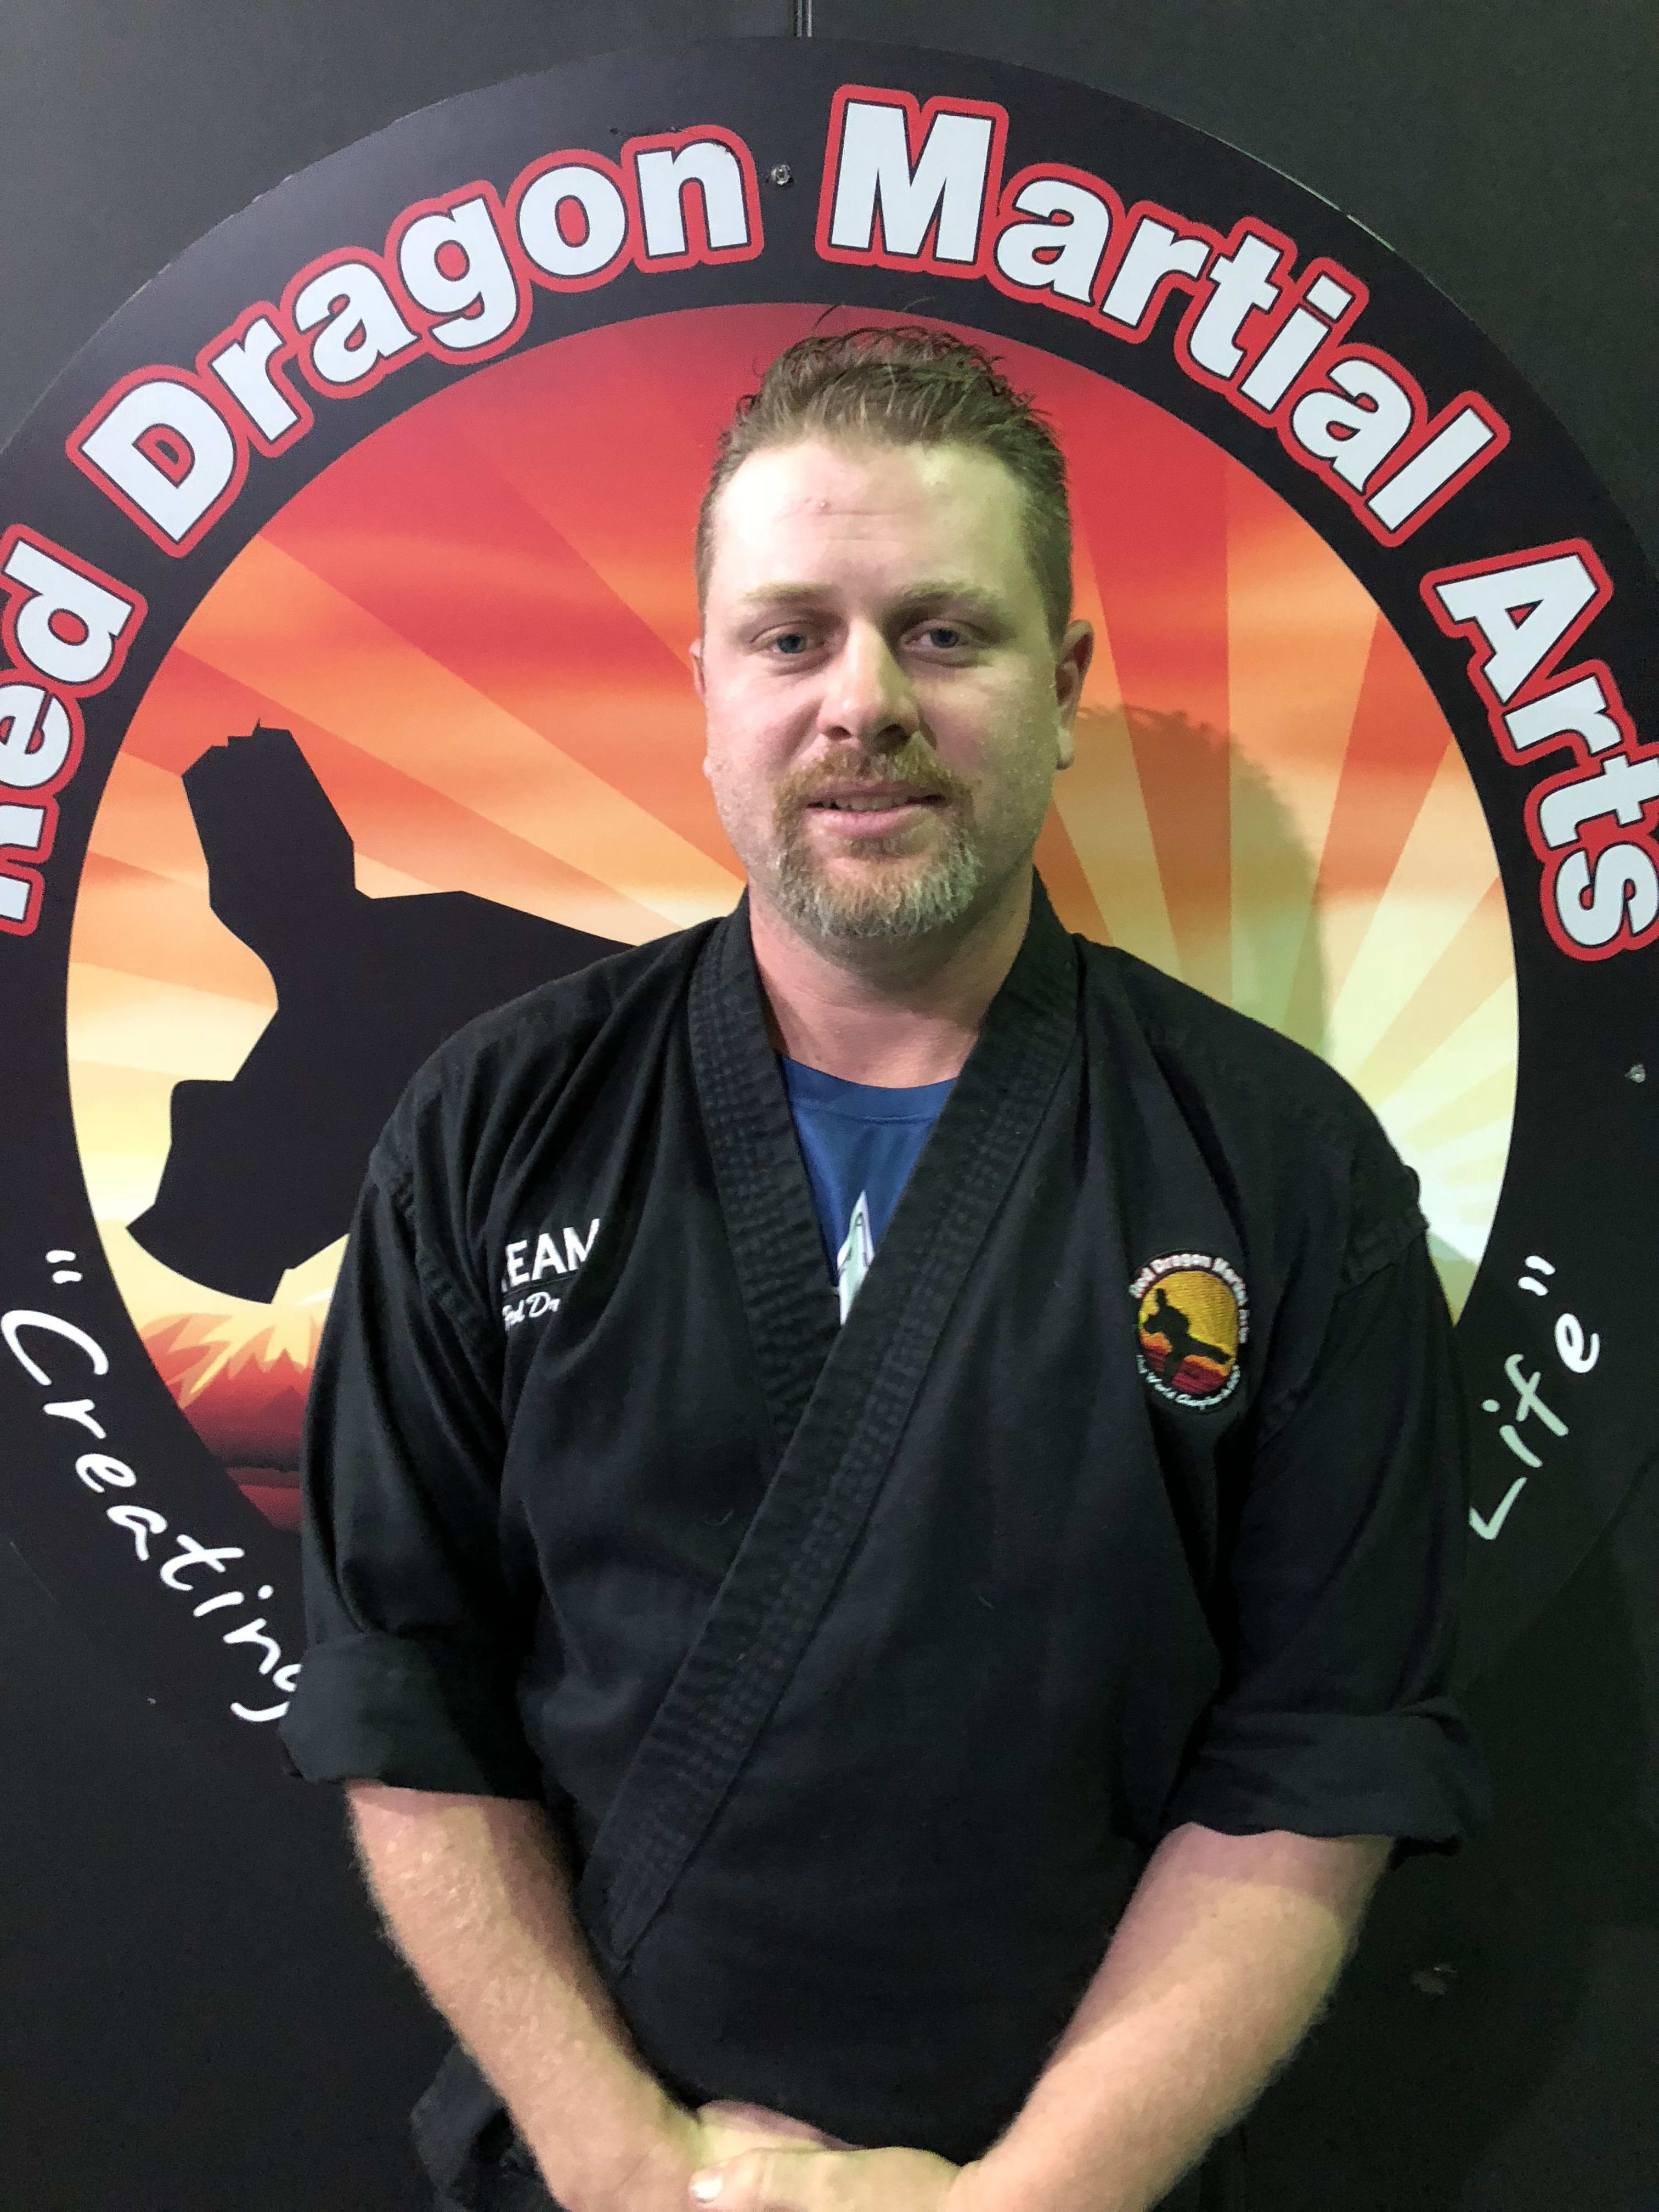 Michael Daniels in Caboolture - Red Dragon Martial Arts